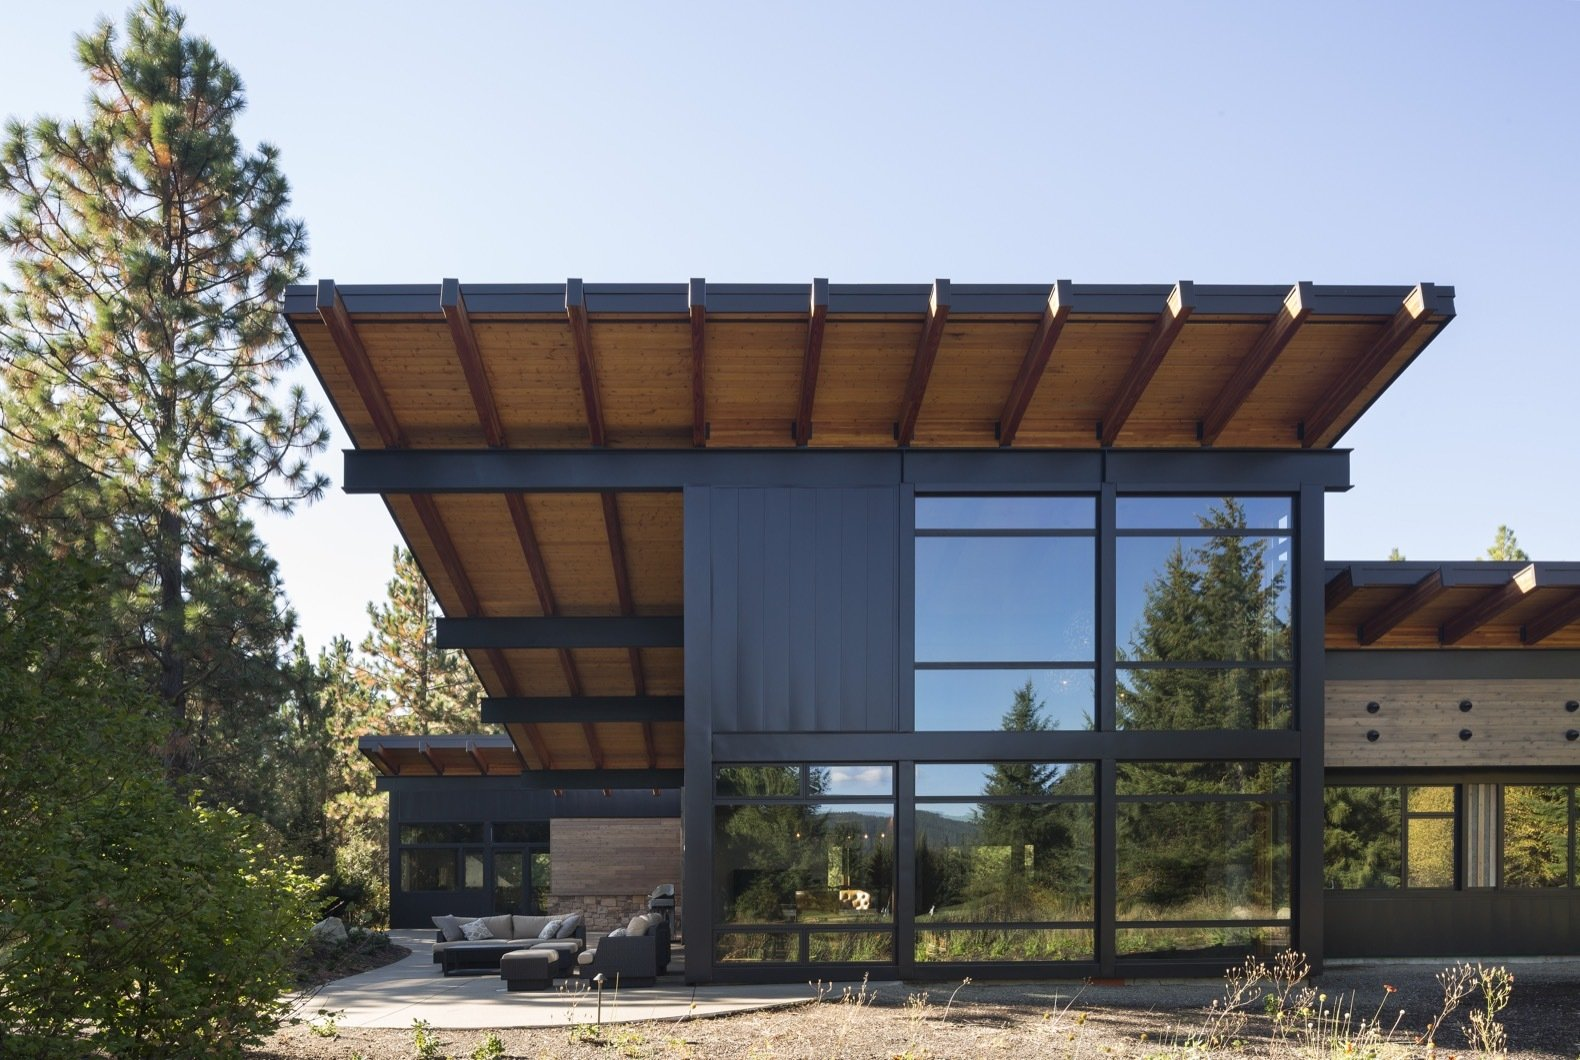 Exterior, Wood Siding Material, House Building Type, Metal Siding Material, Metal Roof Material, Shed RoofLine, and Glass Siding Material To recall the region's past as a historic mining town, a rustic palette of mostly natural materials were applied to the home, including stone, Cor-ten steel, and reclaimed barn wood with modern detailing.    Photo 1 of 12 in A Net-Zero Home Shrugs Off Winter With Solar-Energy Comfort